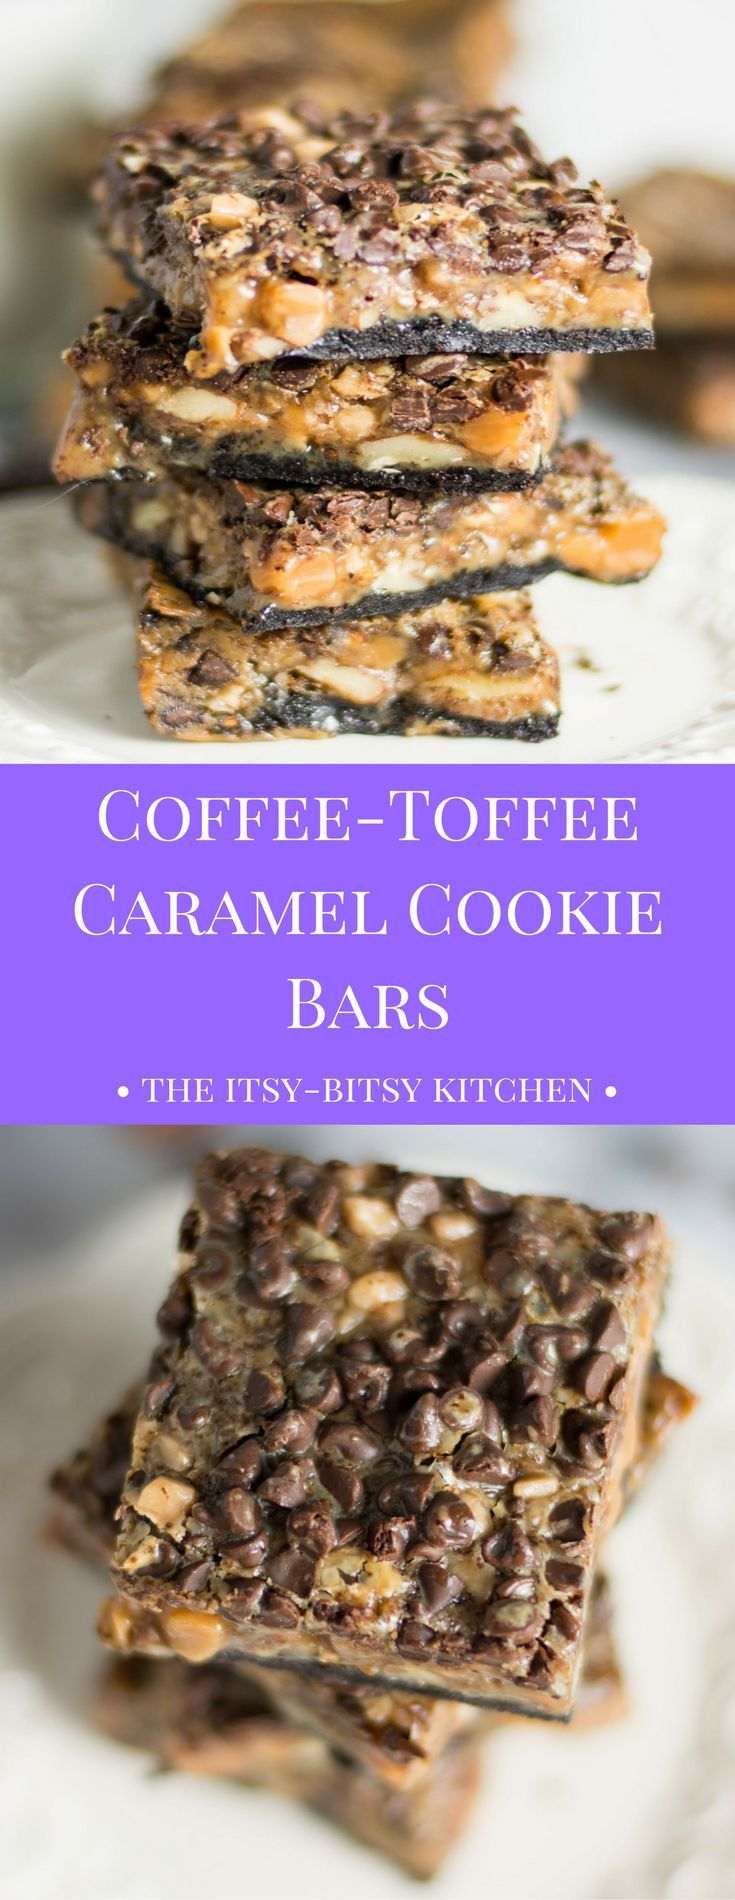 Coffee-toffee caramel cookie bars are the adult version of a magic bar--gooey, dreamy, perfectly sweet--and caffeinated!